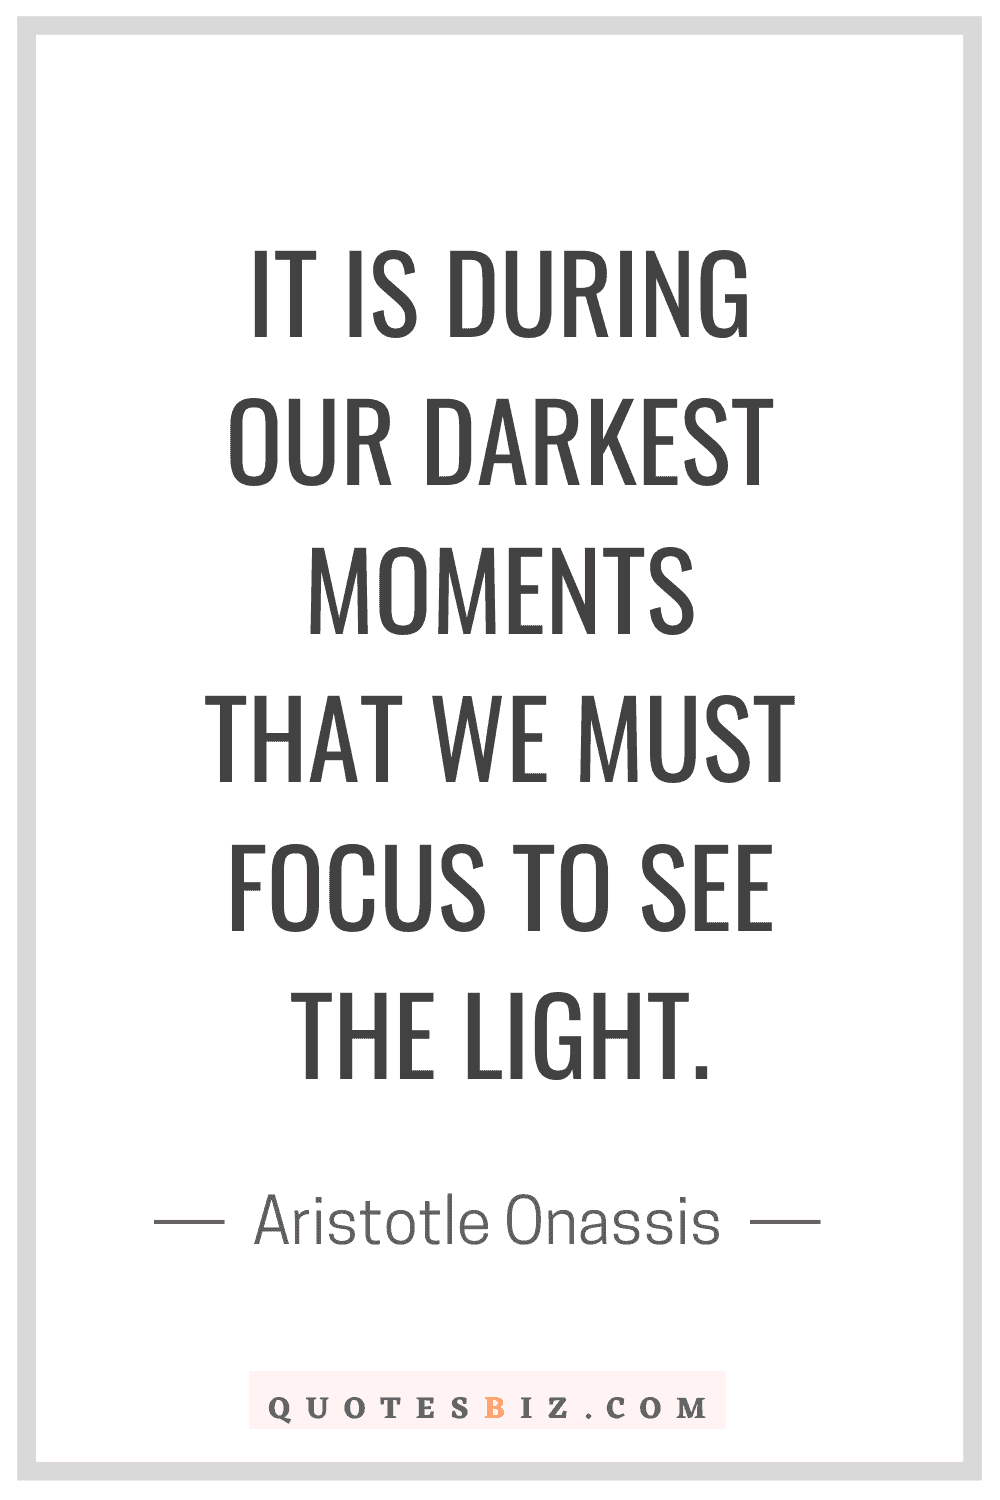 Inspirational Quotes It Is During Our Darkest Moments That We Must Focus To See The Light Aristotle Quotes Believe In Yourself Quotes Inspirational Quotes